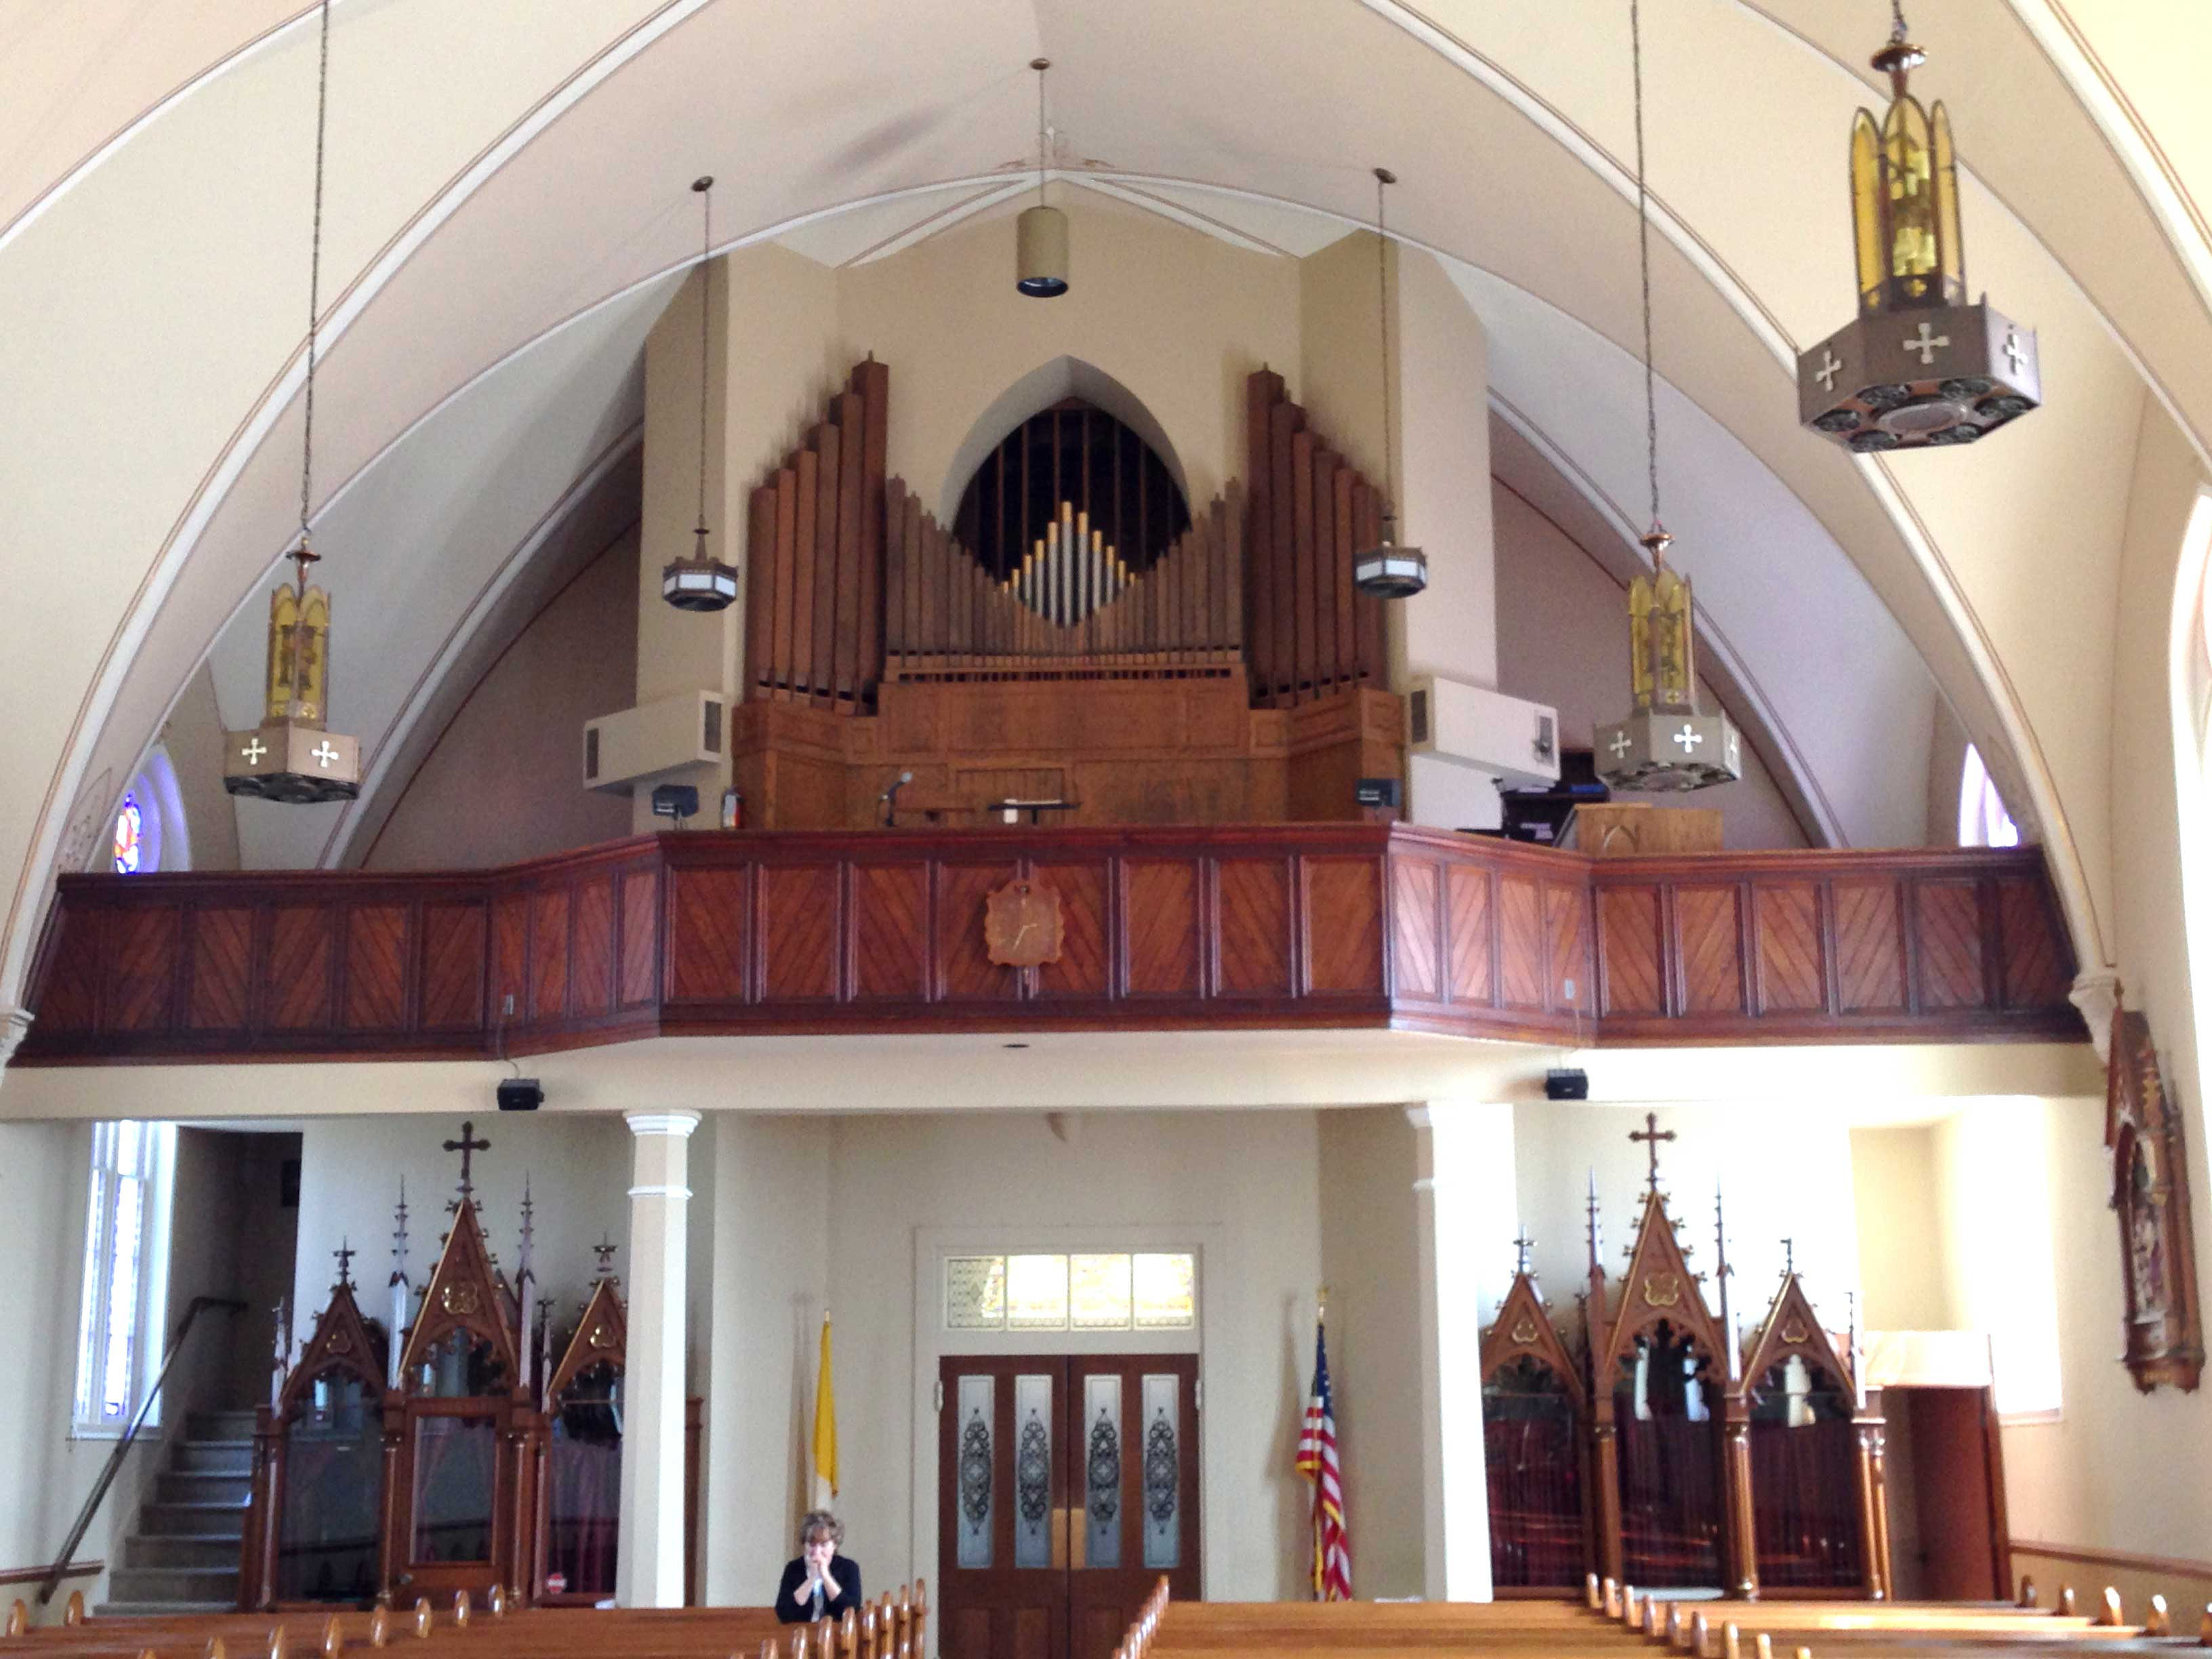 CHIOR LOFT—View of St. Augustine choir loft, Aug. 15, 2015. (Photo by Glenn Eckl)